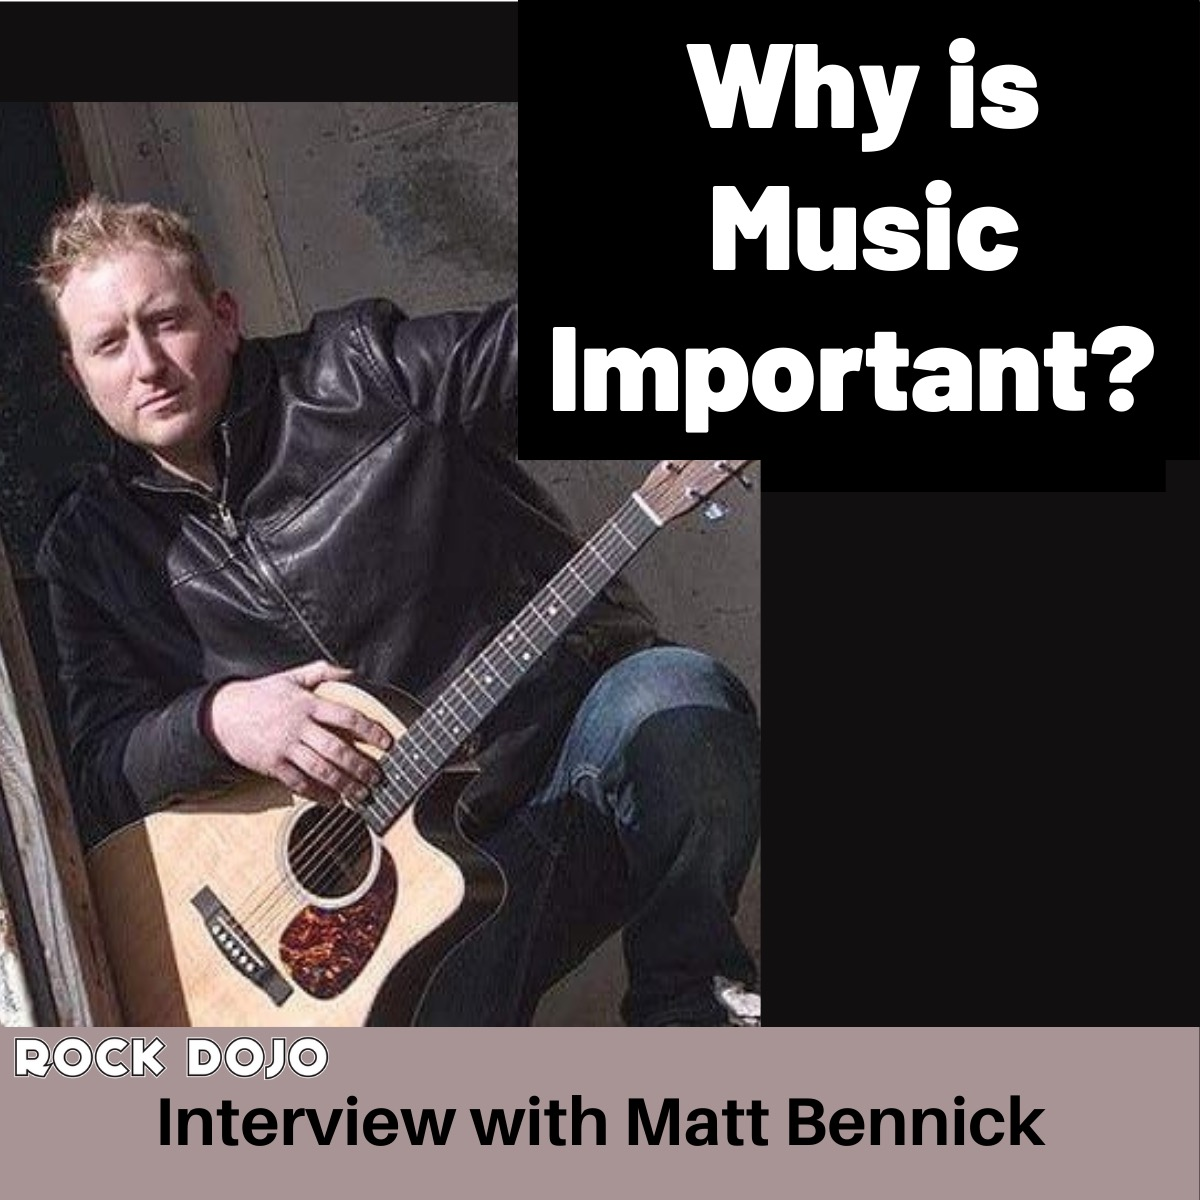 Why is learning to play a musical instrument important for kids?